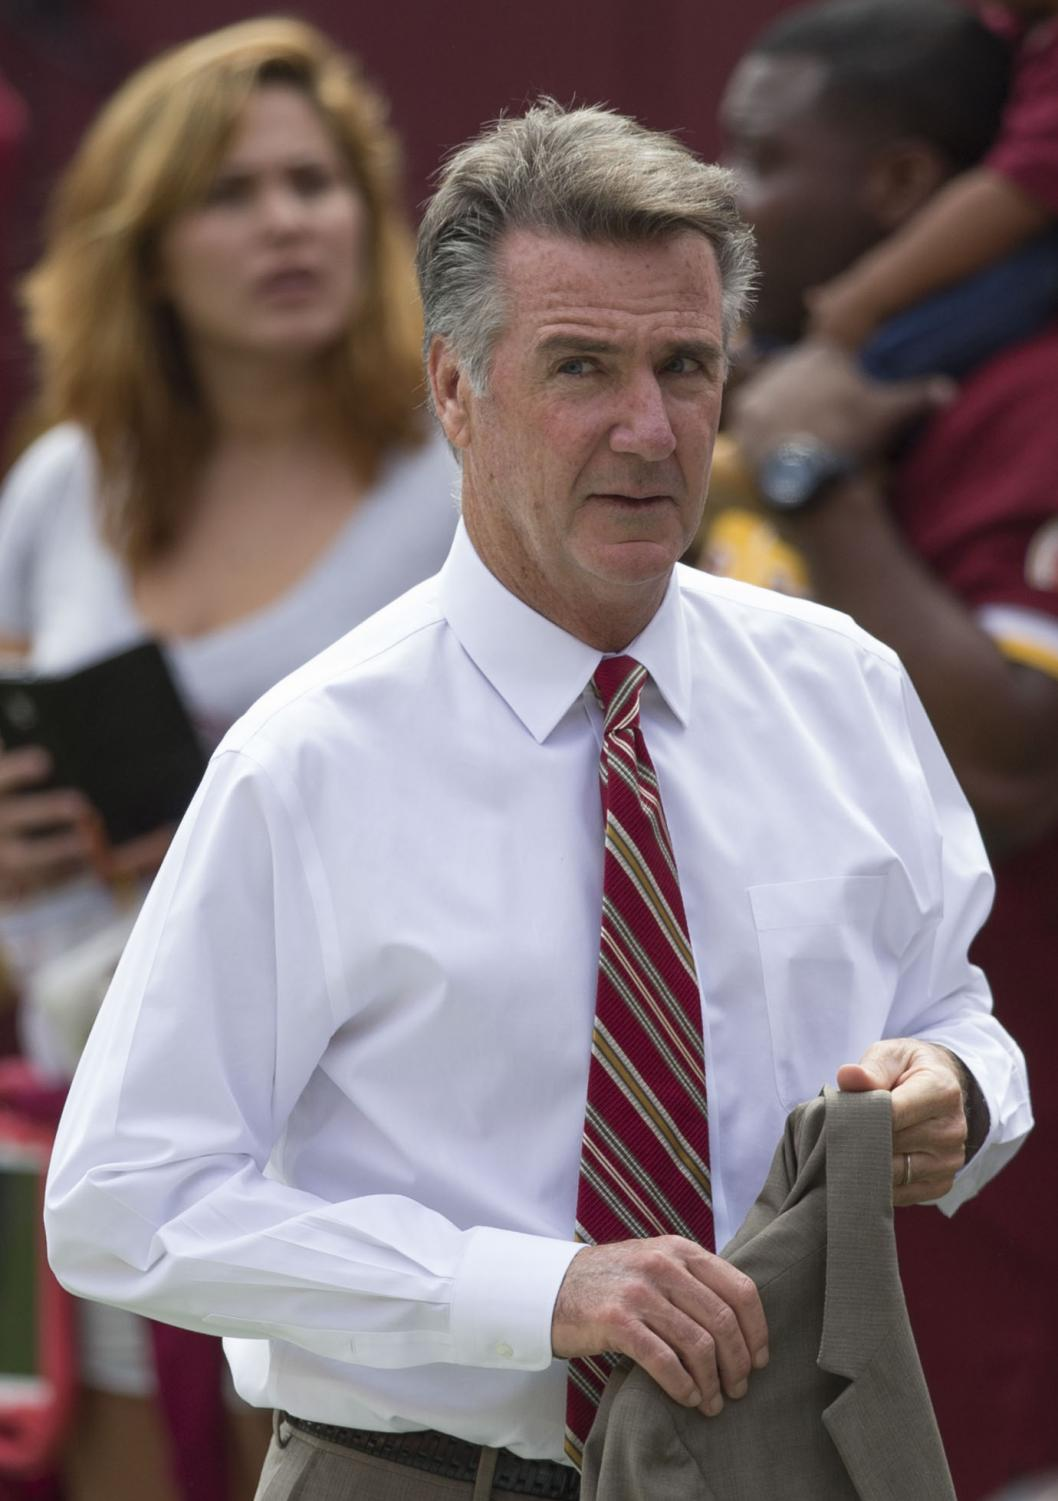 Redskins fans were thrilled to see Bruce Allen finally out of Washington, but many question why it took so long. Owner Dan Snyder must be sure not to make the same mistake he did with Allen again, and hire a more football-minded general manager.